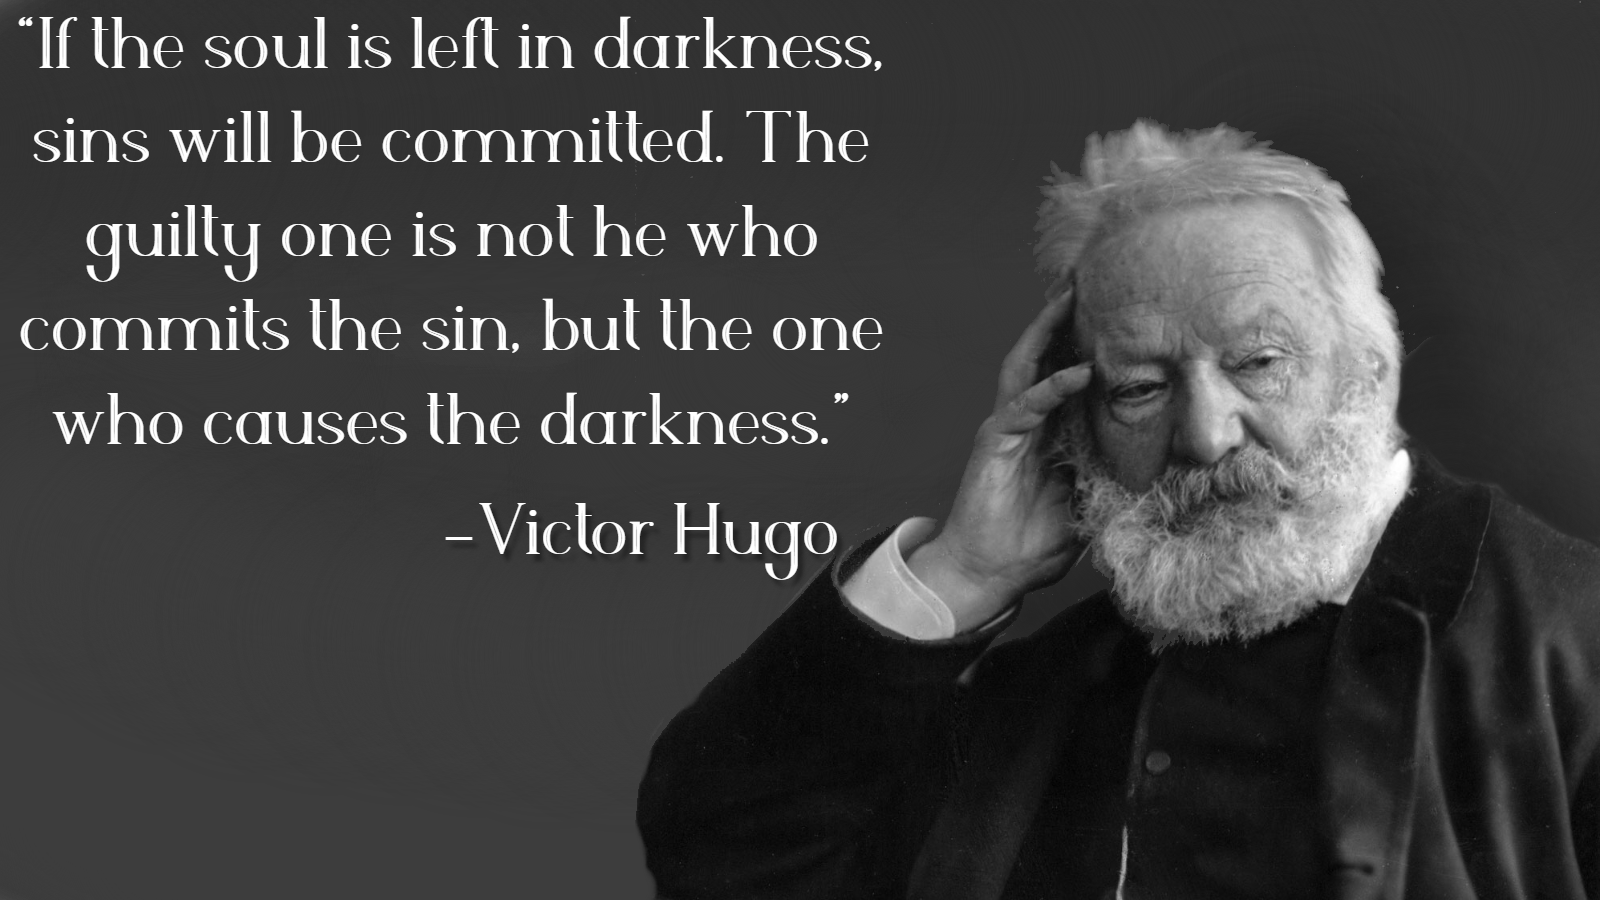 """If the soul is left in darkness, sins will be committed. The guilty one is not he who commits the sin, but the one who causes the darkness."" -Victor Hugo [1600×900]"